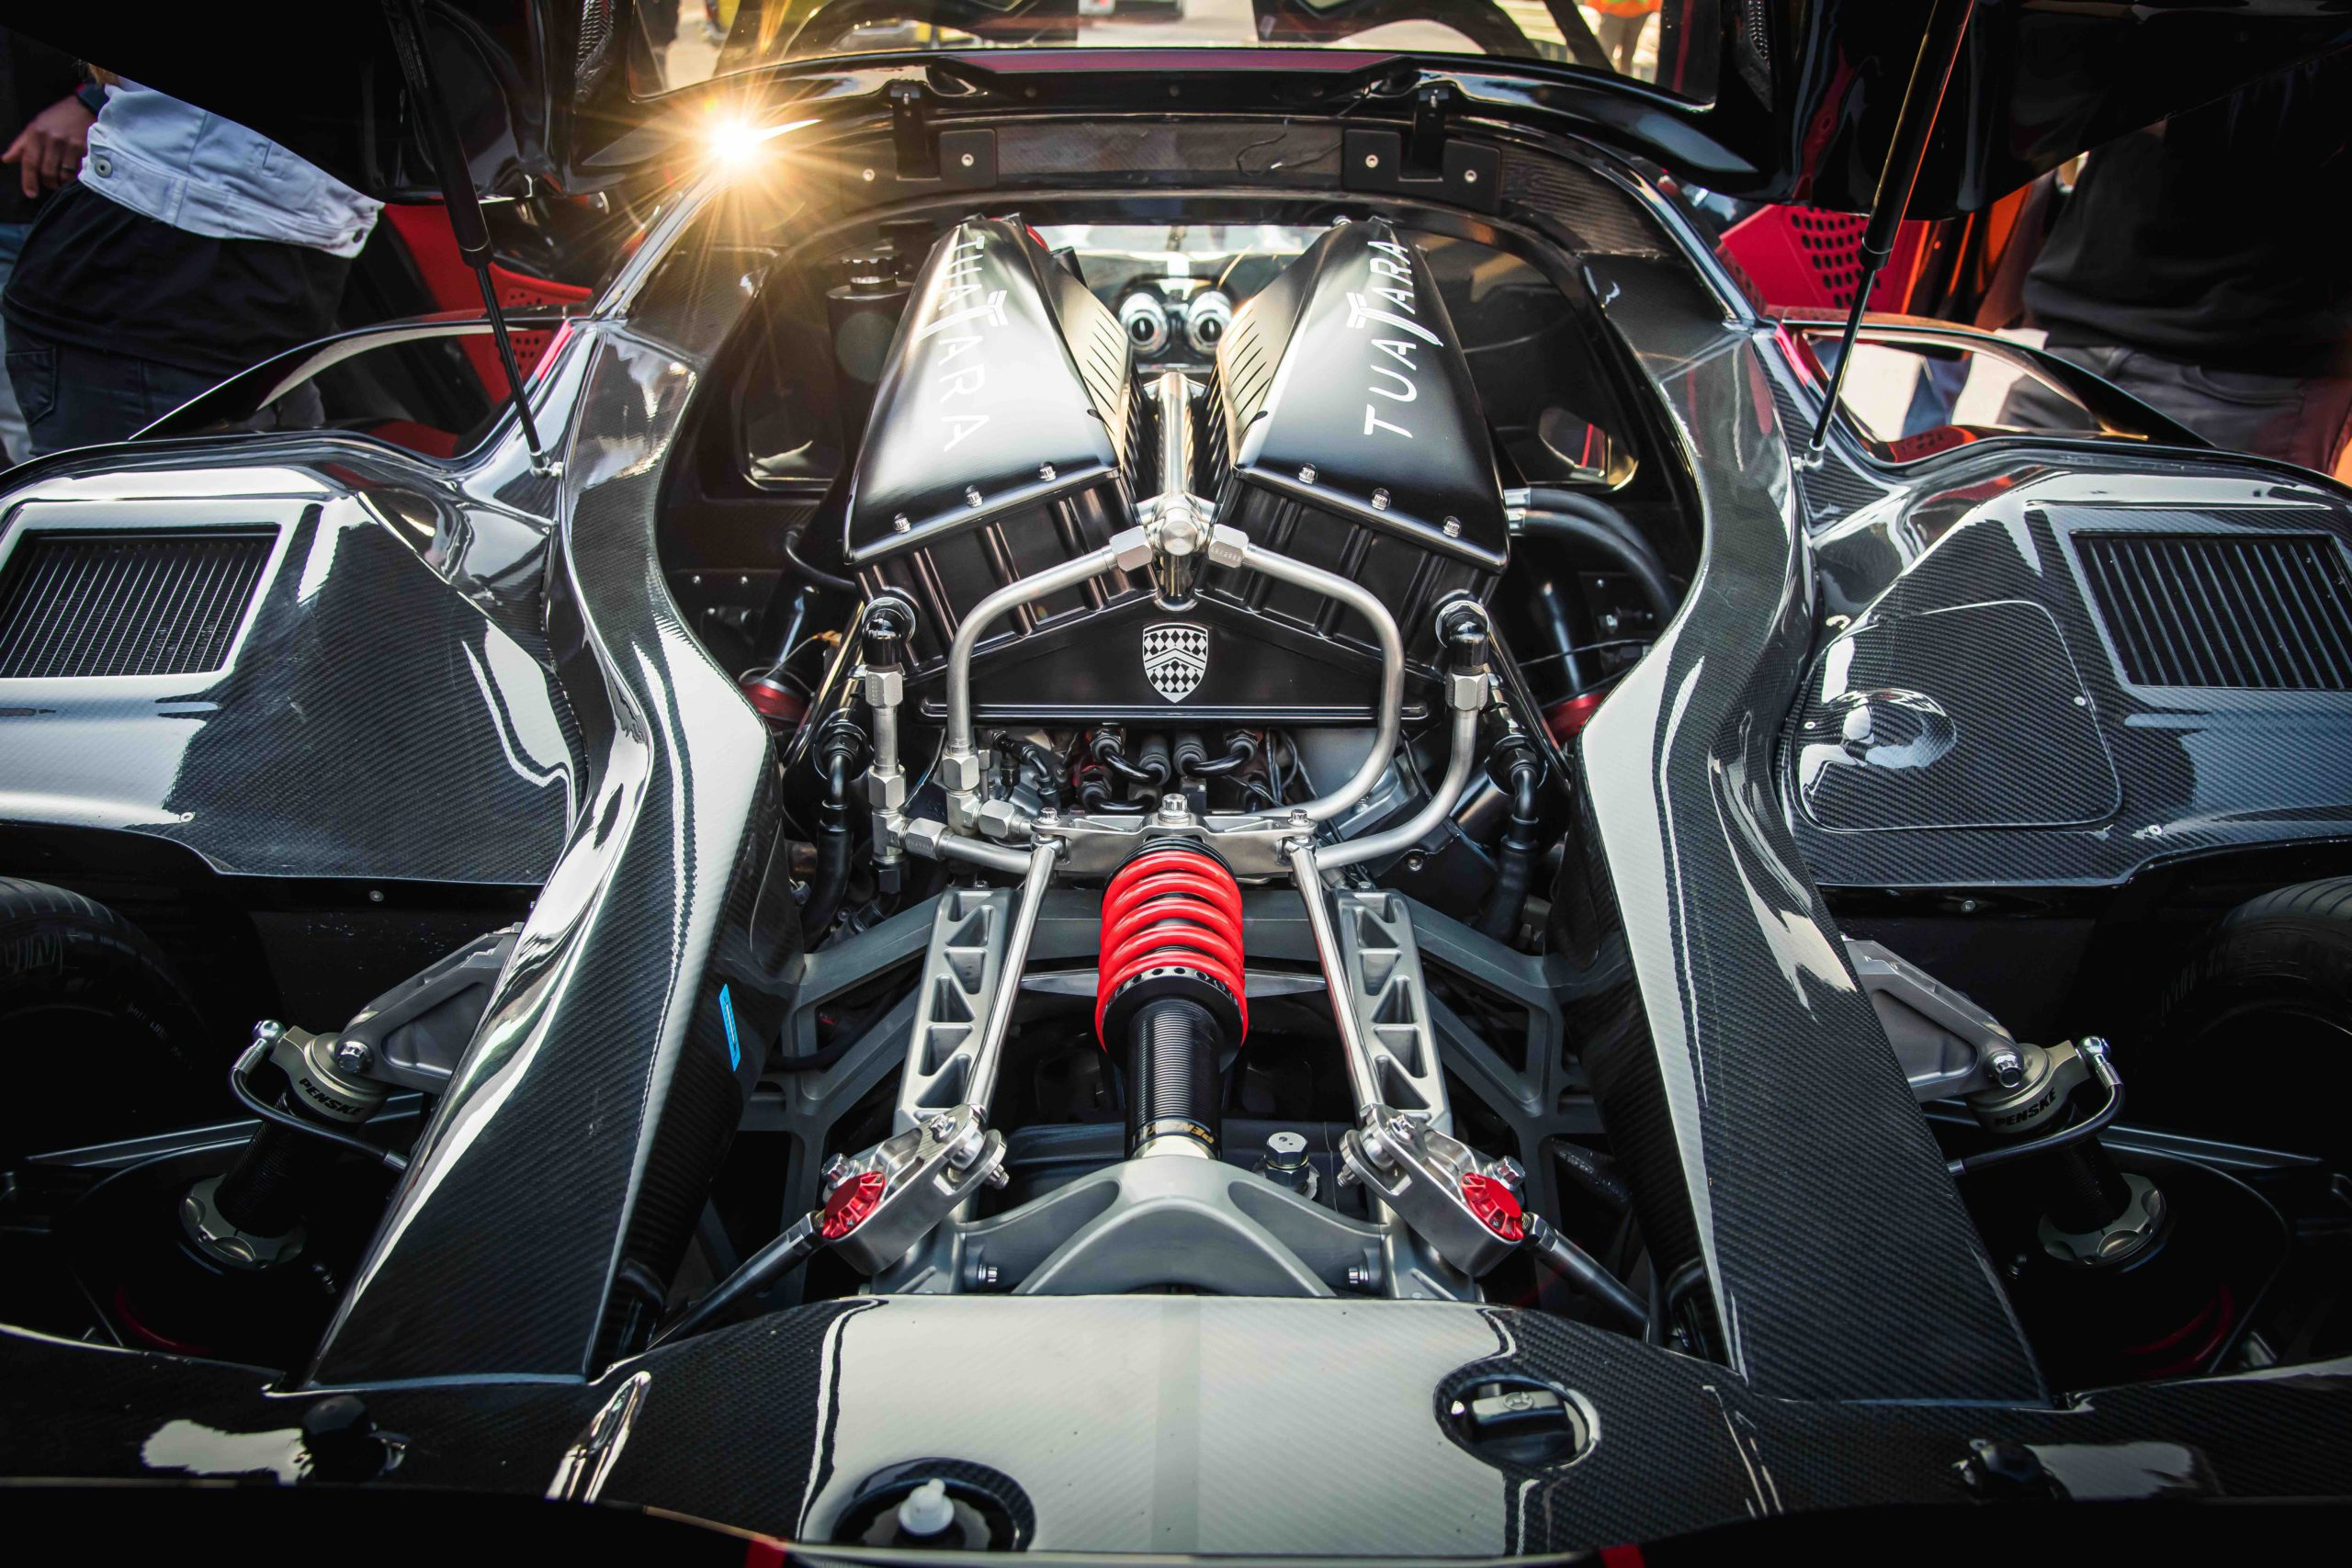 SSC Tuatara engine